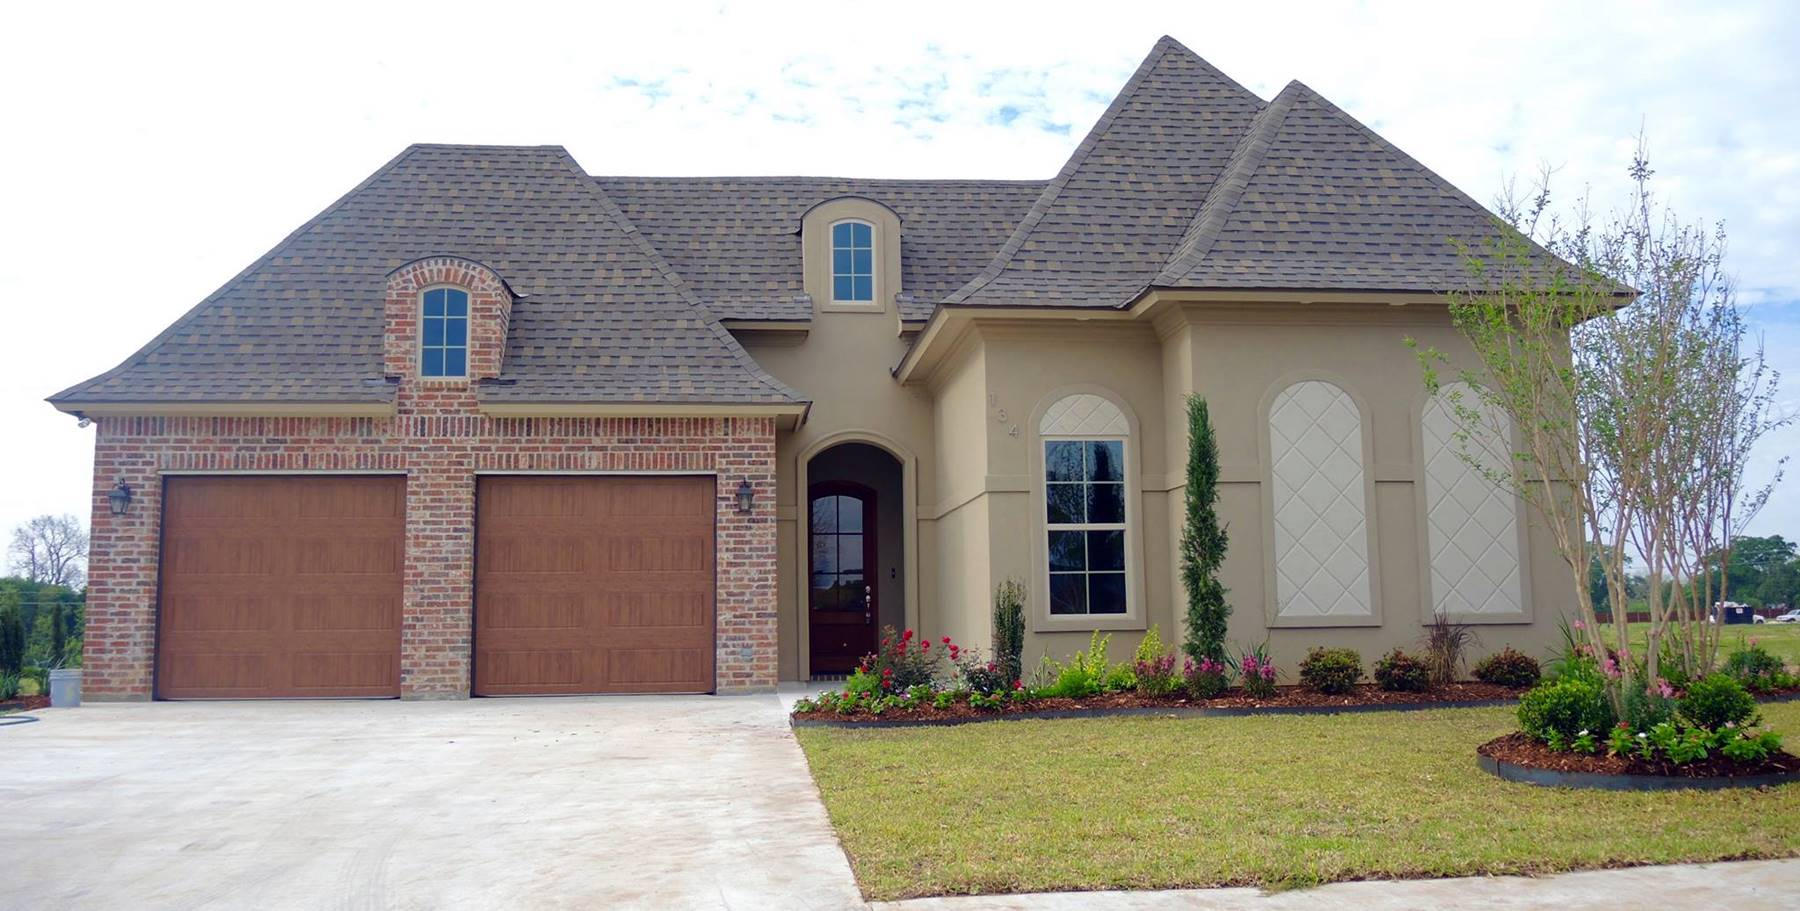 Ste marie home builders lafayette youngsville broussard for Www homebuilders com